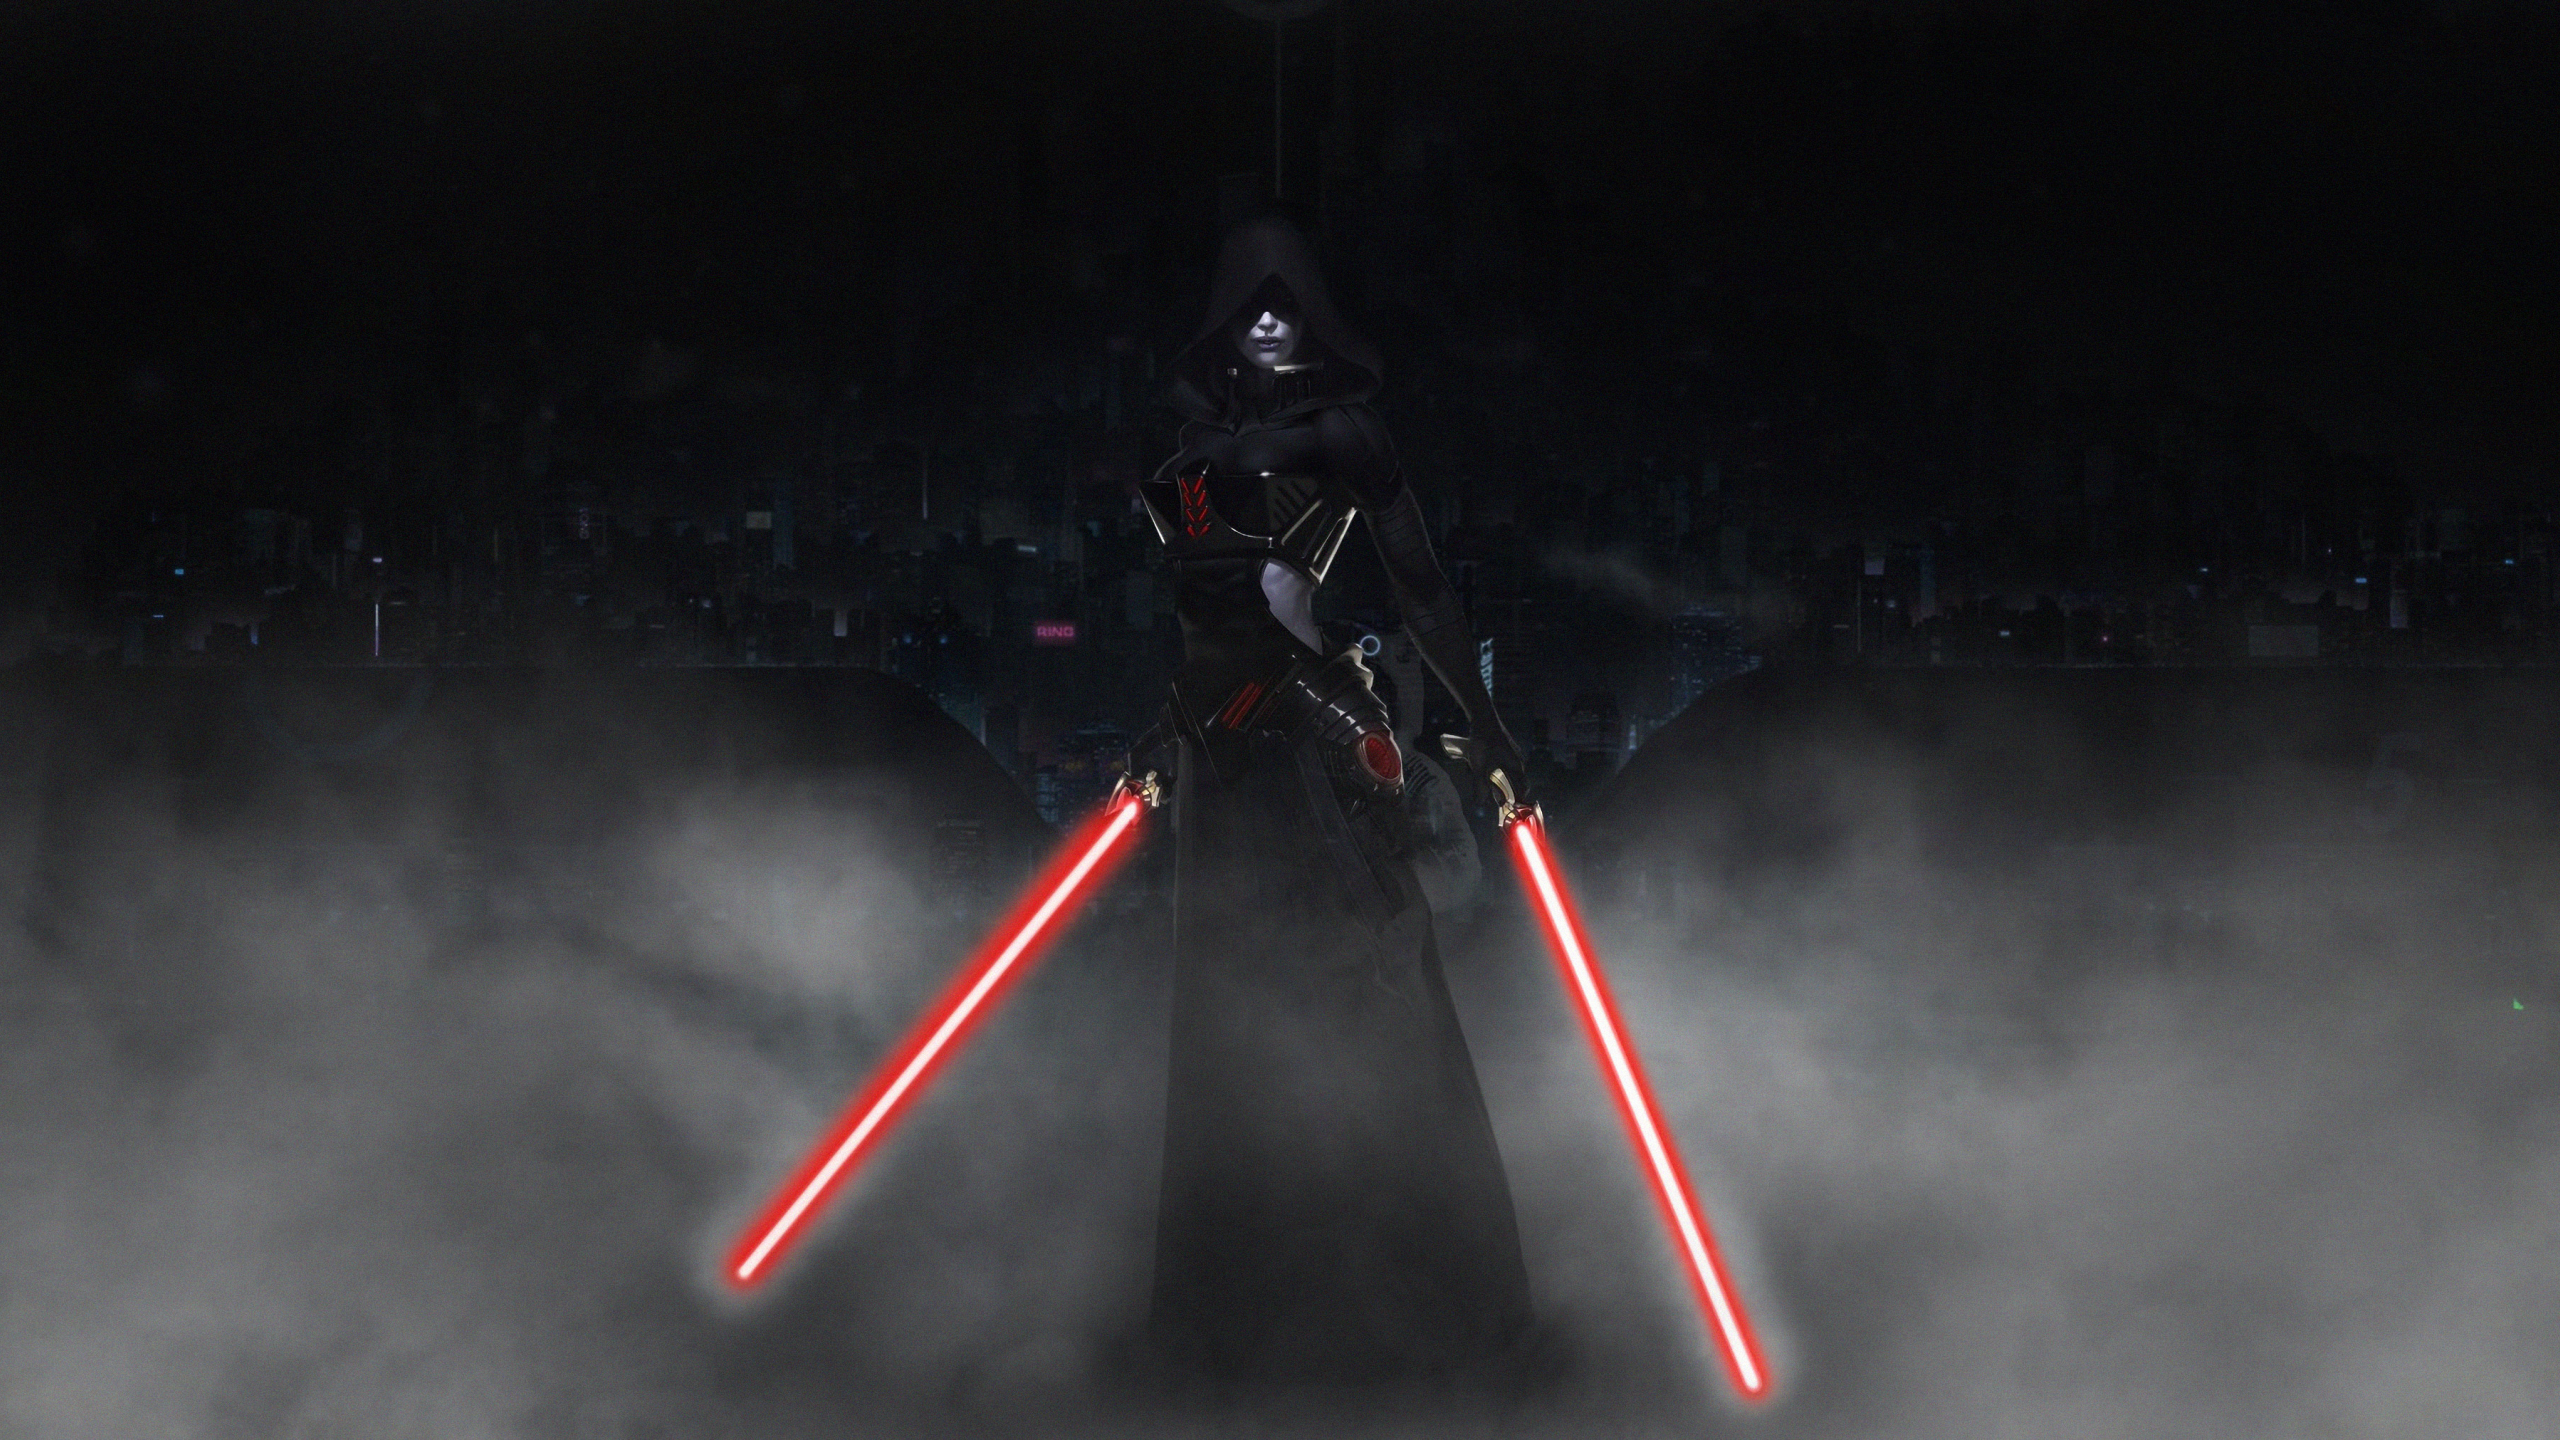 2560x1440 Sith With Lightsaber 1440p Resolution Wallpaper Hd Artist 4k Wallpapers Images Photos And Background